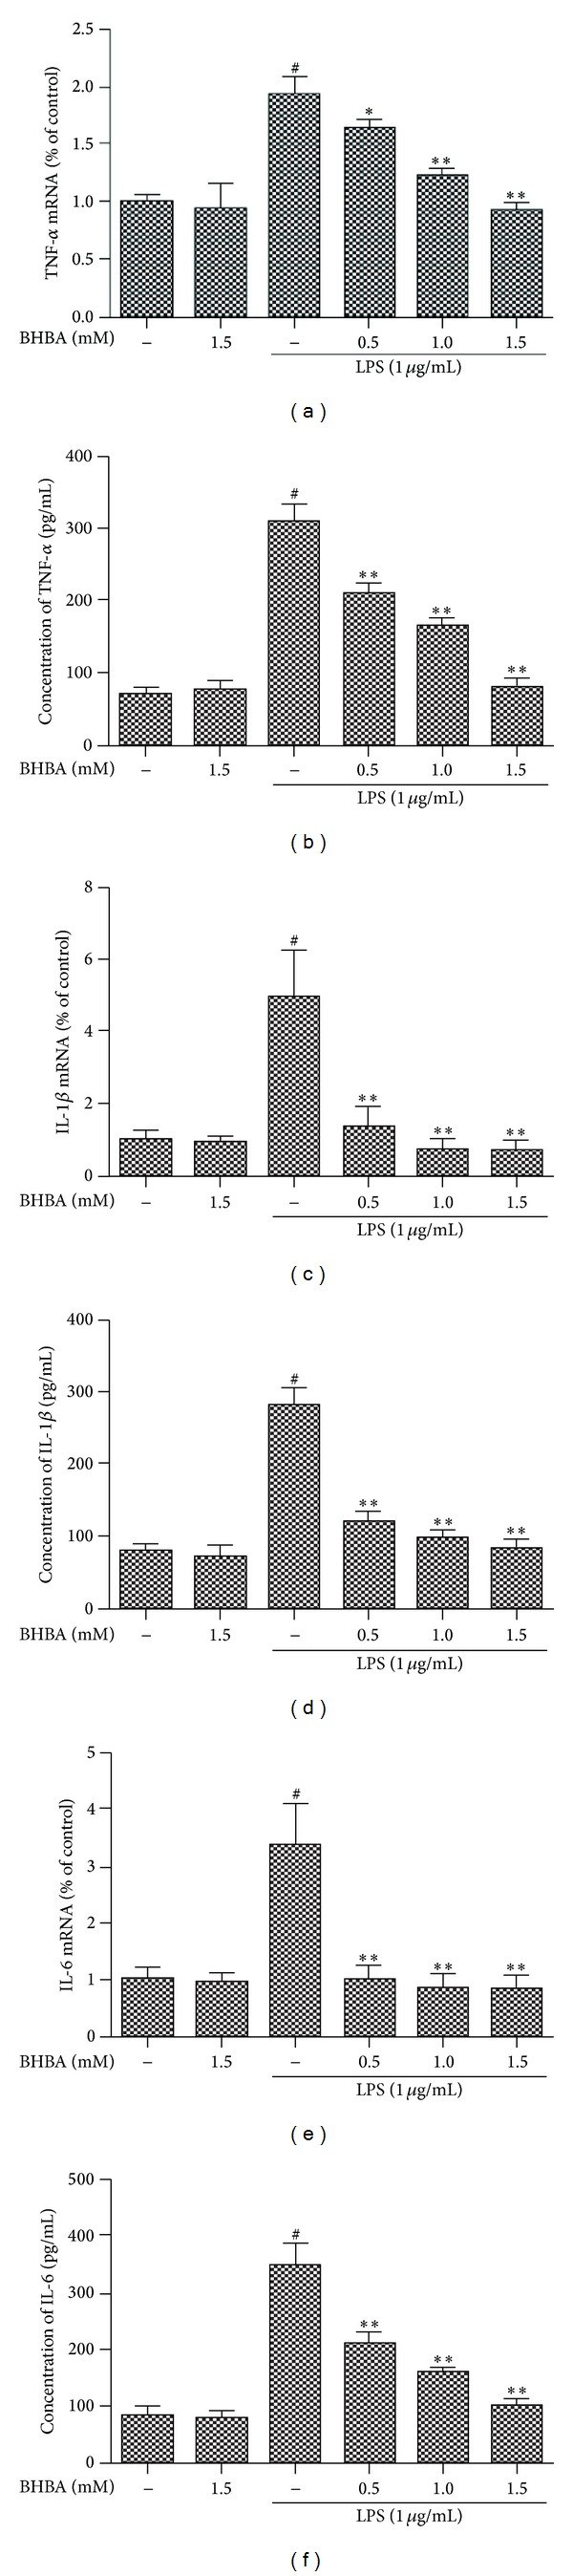 Effects of BHBA on LPS-induced the gene expression and protein secretion of proinflammatory cytokines (TNF- α , IL-1 β , and IL-6) in BV-2 cells. Cells were pretreated with BHBA (0.5, 1.0, and 1.5 mM) 1 h prior to incubation of LPS (1 μ g/mL) for 4 h (mRNA) or 24 h (protein). Proteins and mRNA of TNF- α ((a), (b)), IL-1 β ((c), (d)), and IL-6 ((e), (f)) were determined by ELISA and quantitative real-time PCR as described in Section 2 . The relative mRNA level was normalized to β -actin mRNA. Results are expressed as mean ± SD for each group from three independent experiments. # Significantly different when compared with control alone, P